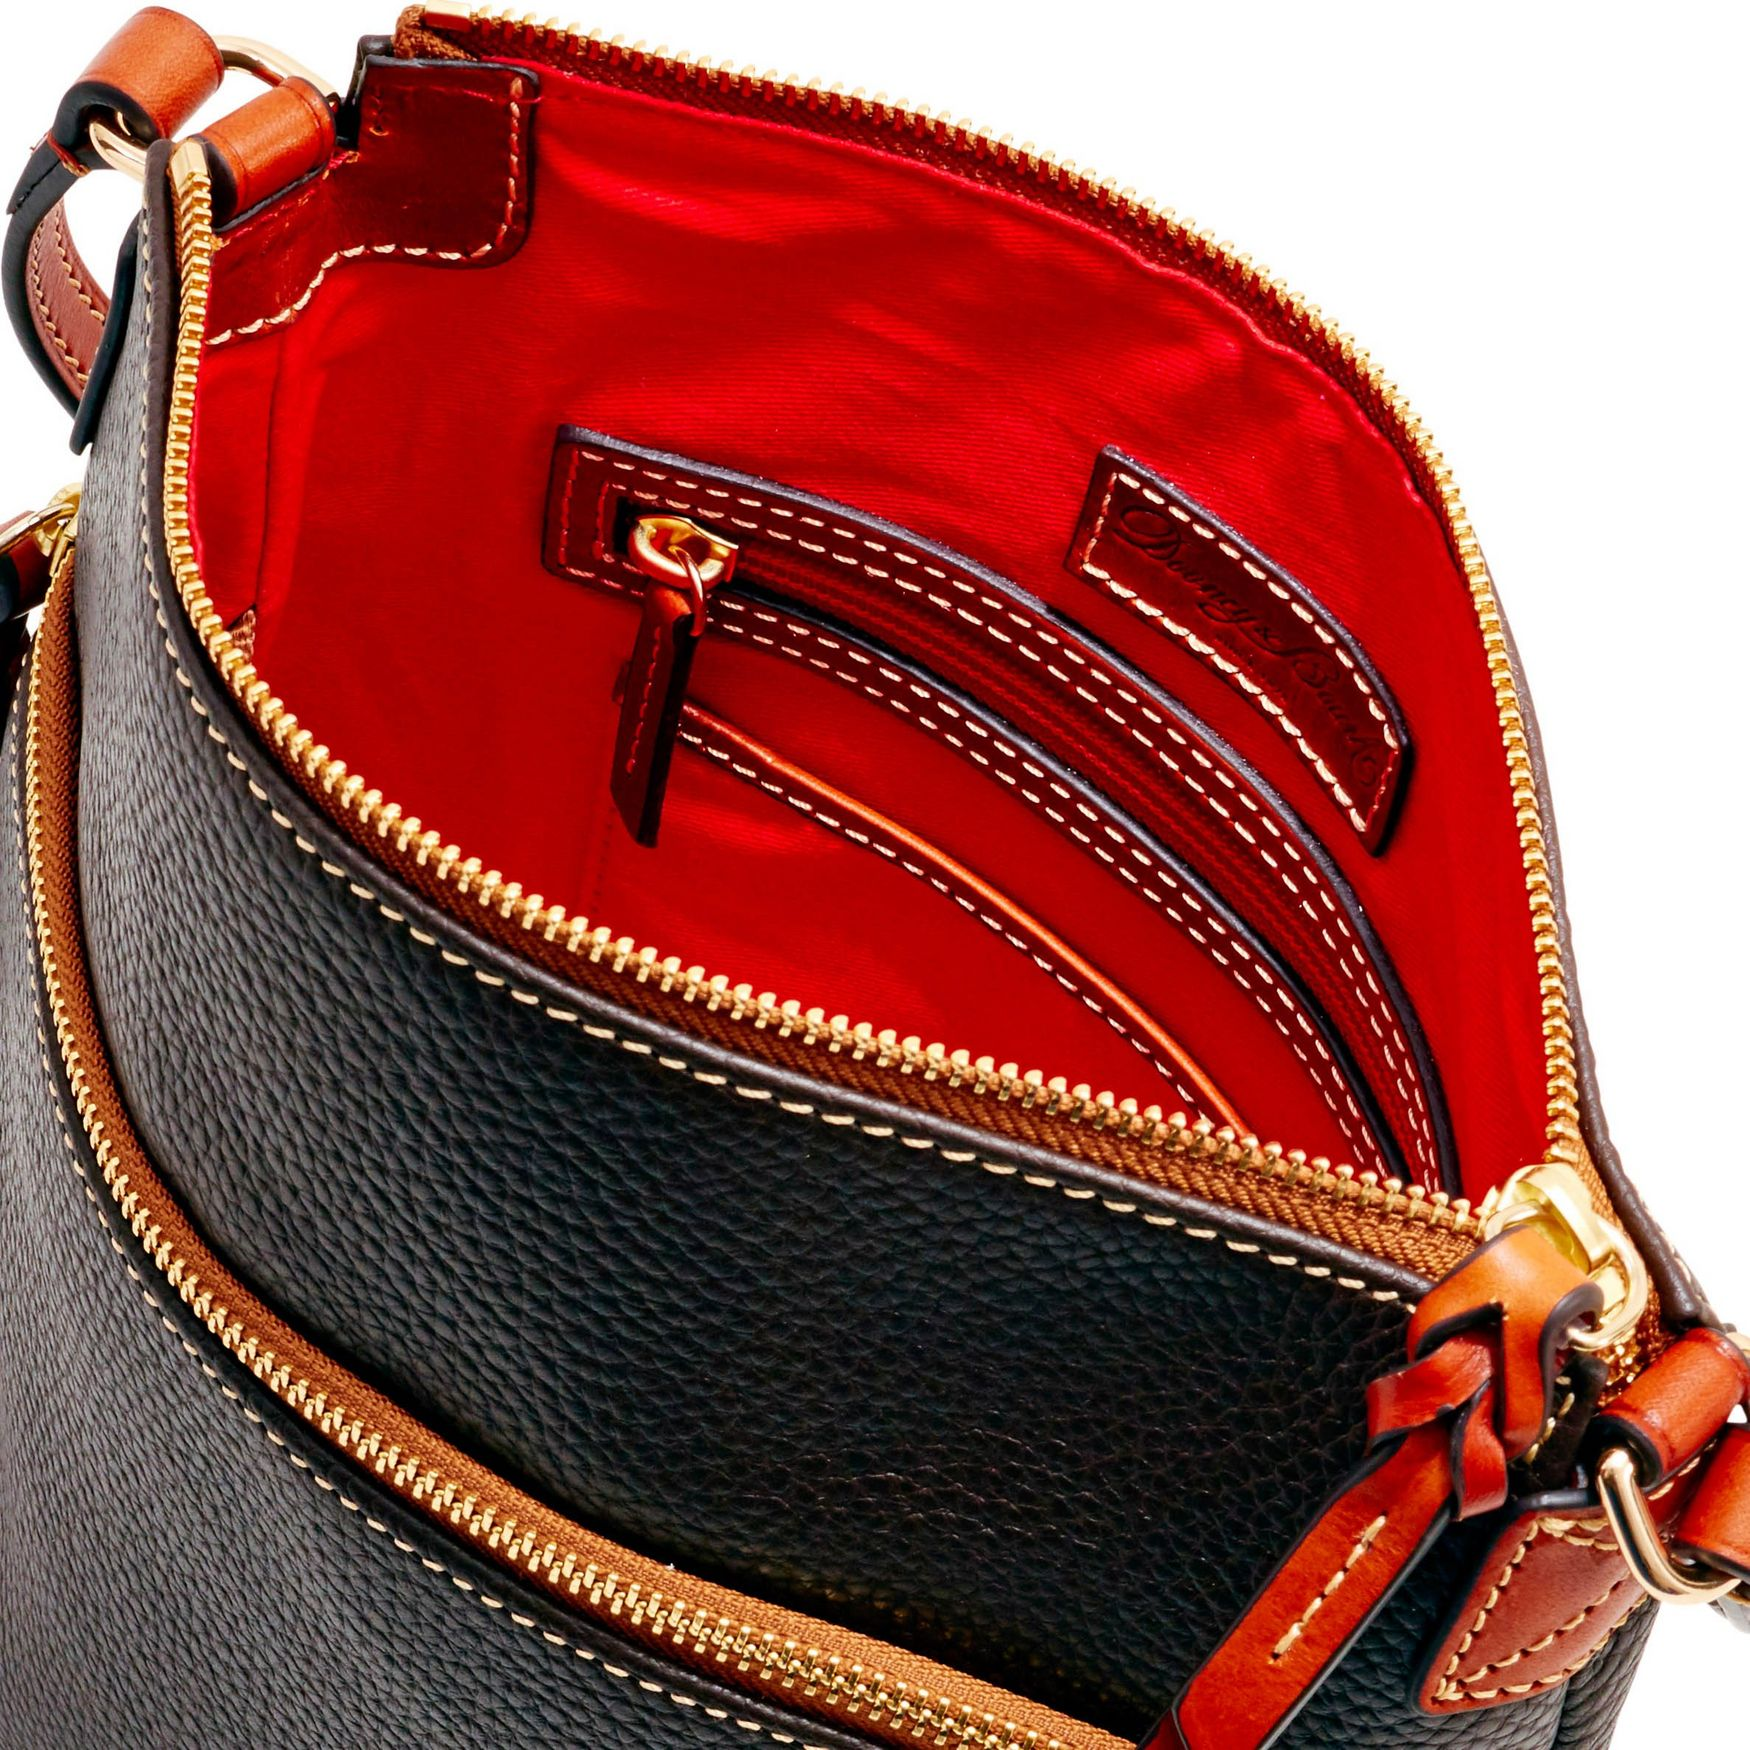 Dooney-amp-Bourke-Pebble-Grain-Crossbody-Medium-Wristlet-Shoulder-Bag thumbnail 17